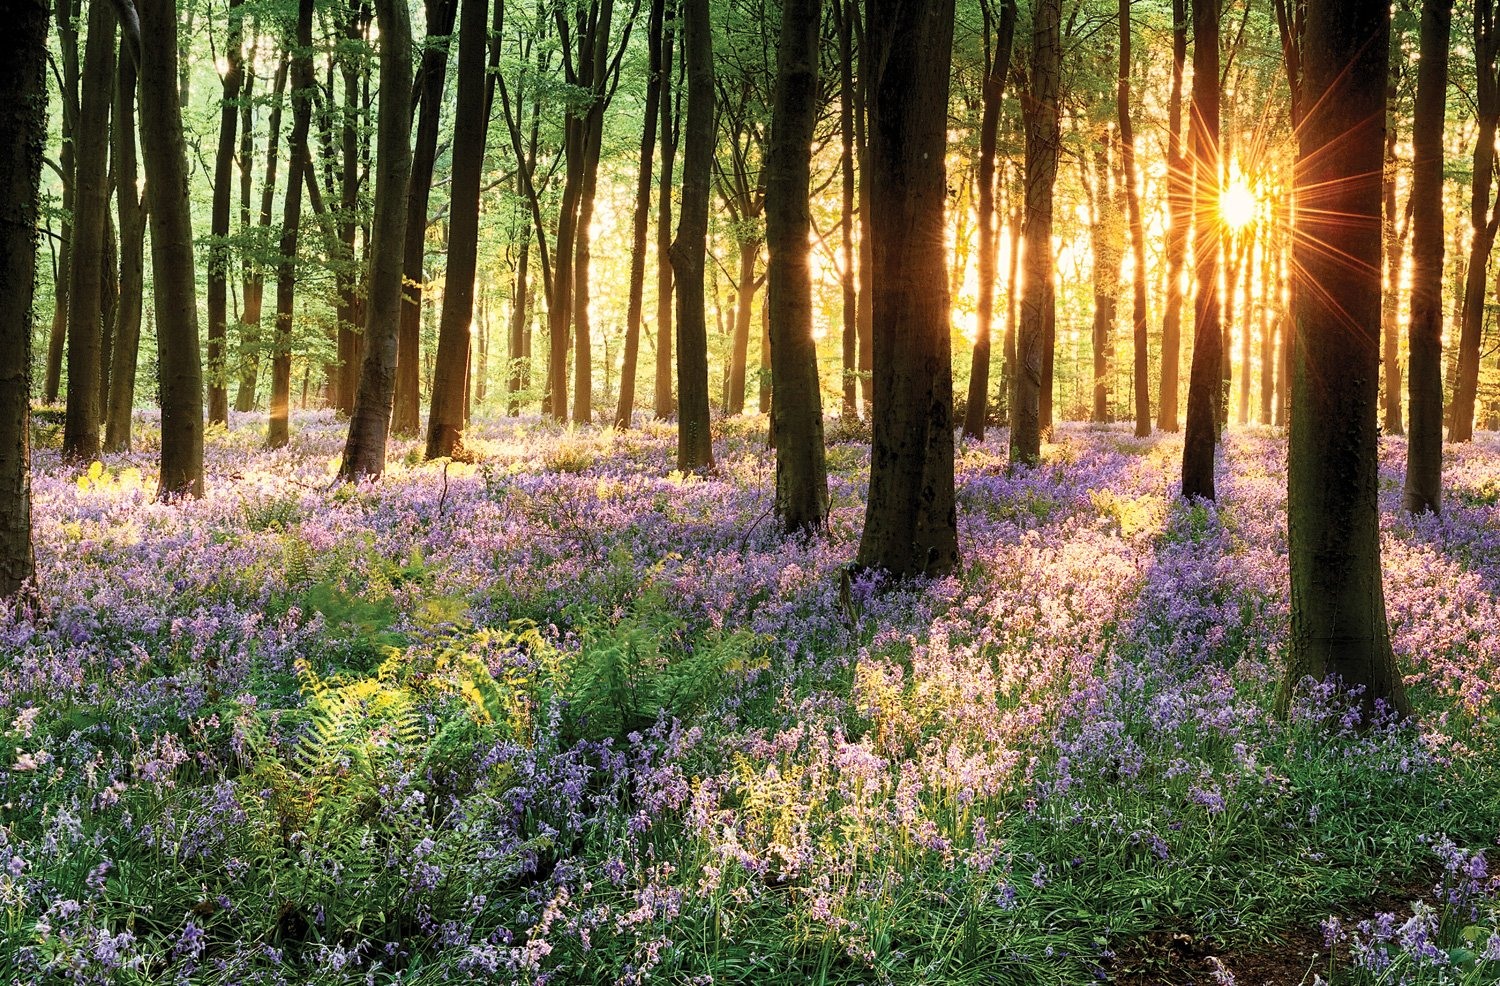 JP London SPMURLT2536 Prepasted Removable Wall Mural Bluebell Forest at dawn Sun Ray Light at 24 High x 36 Wide